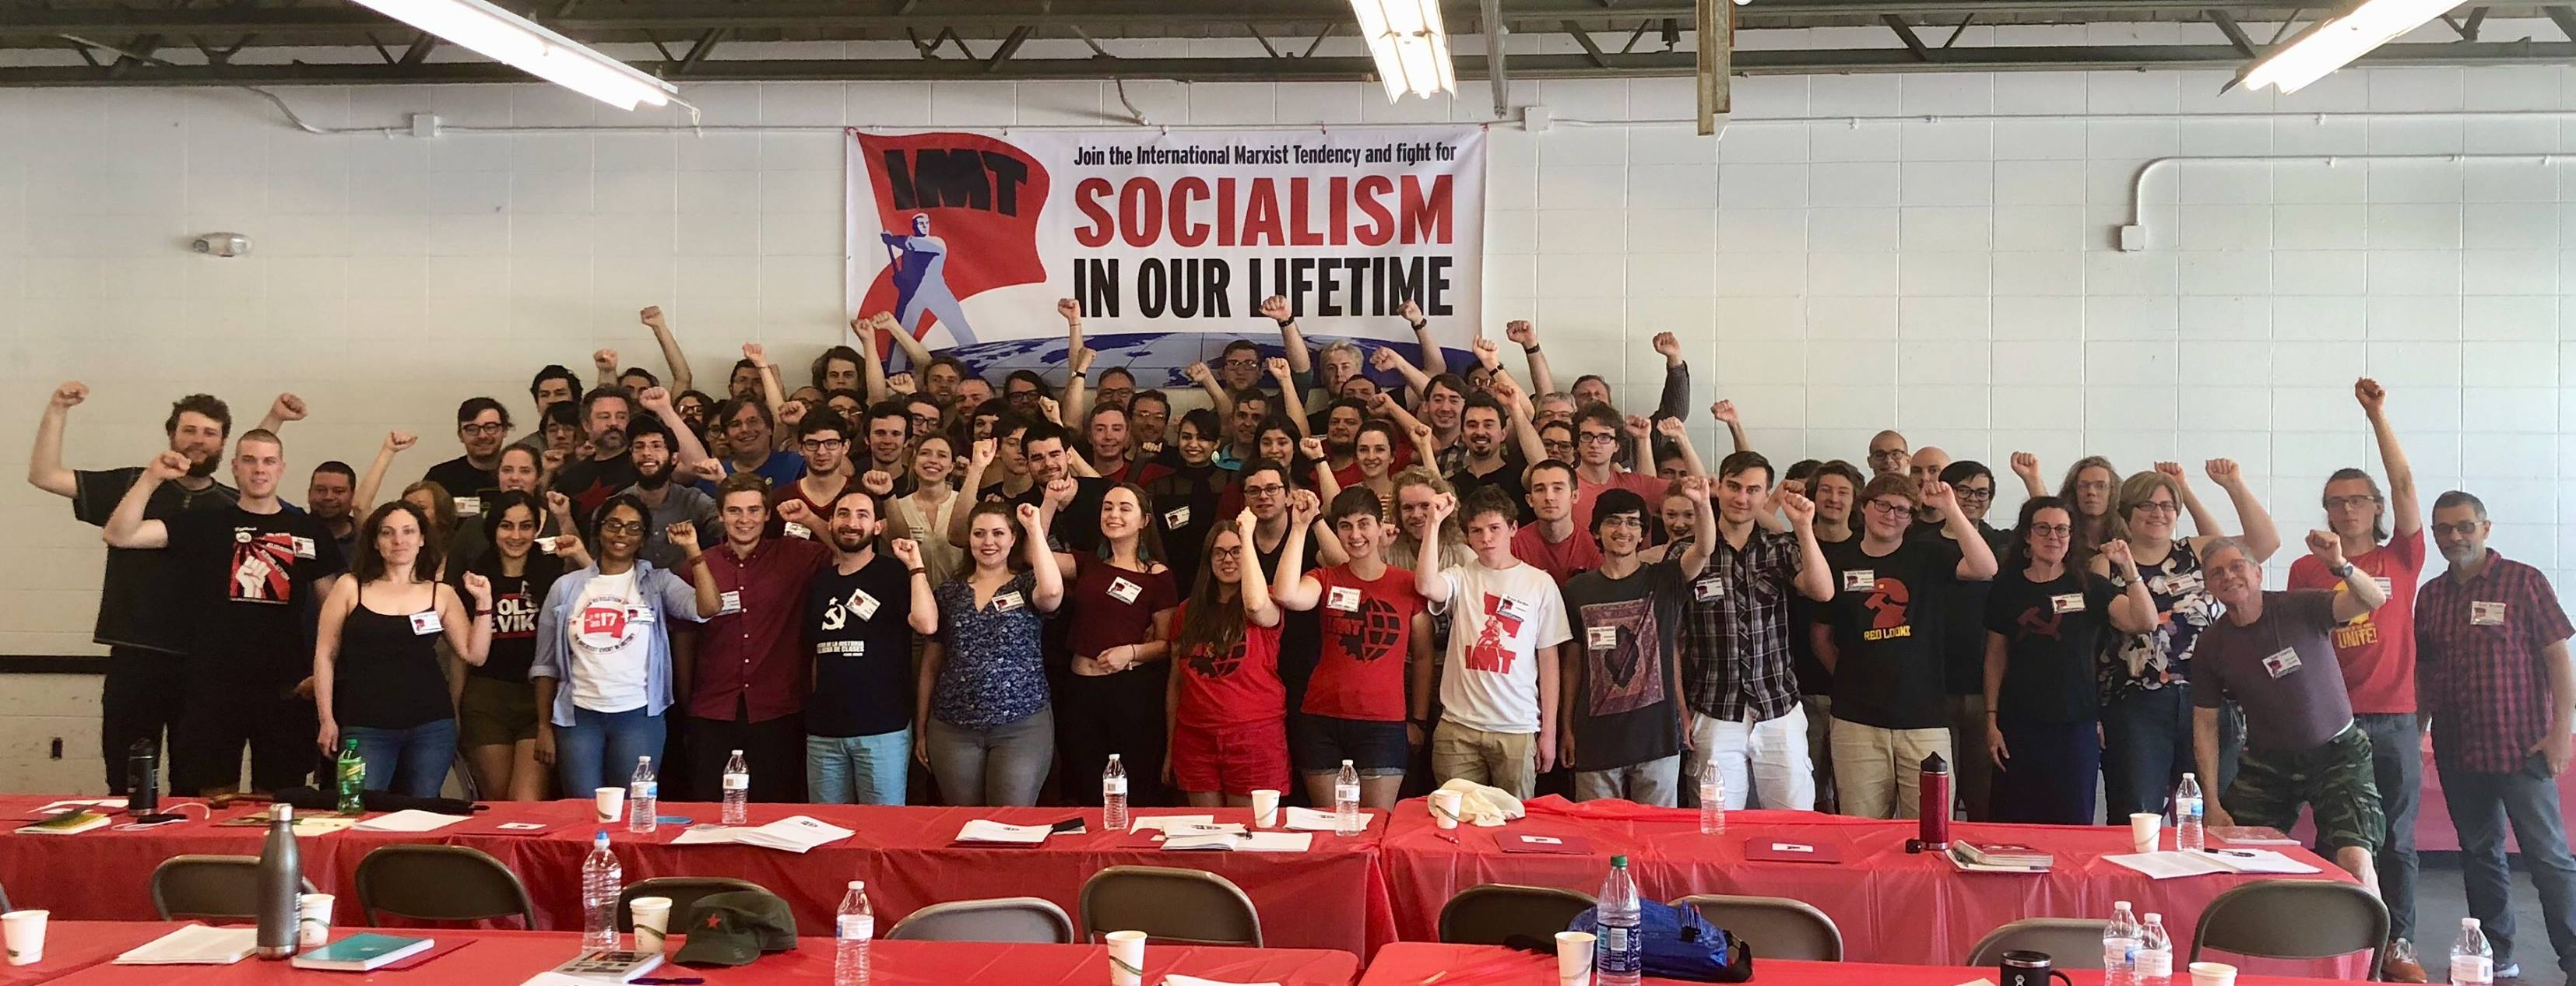 USA IMT socialism in our lifetime